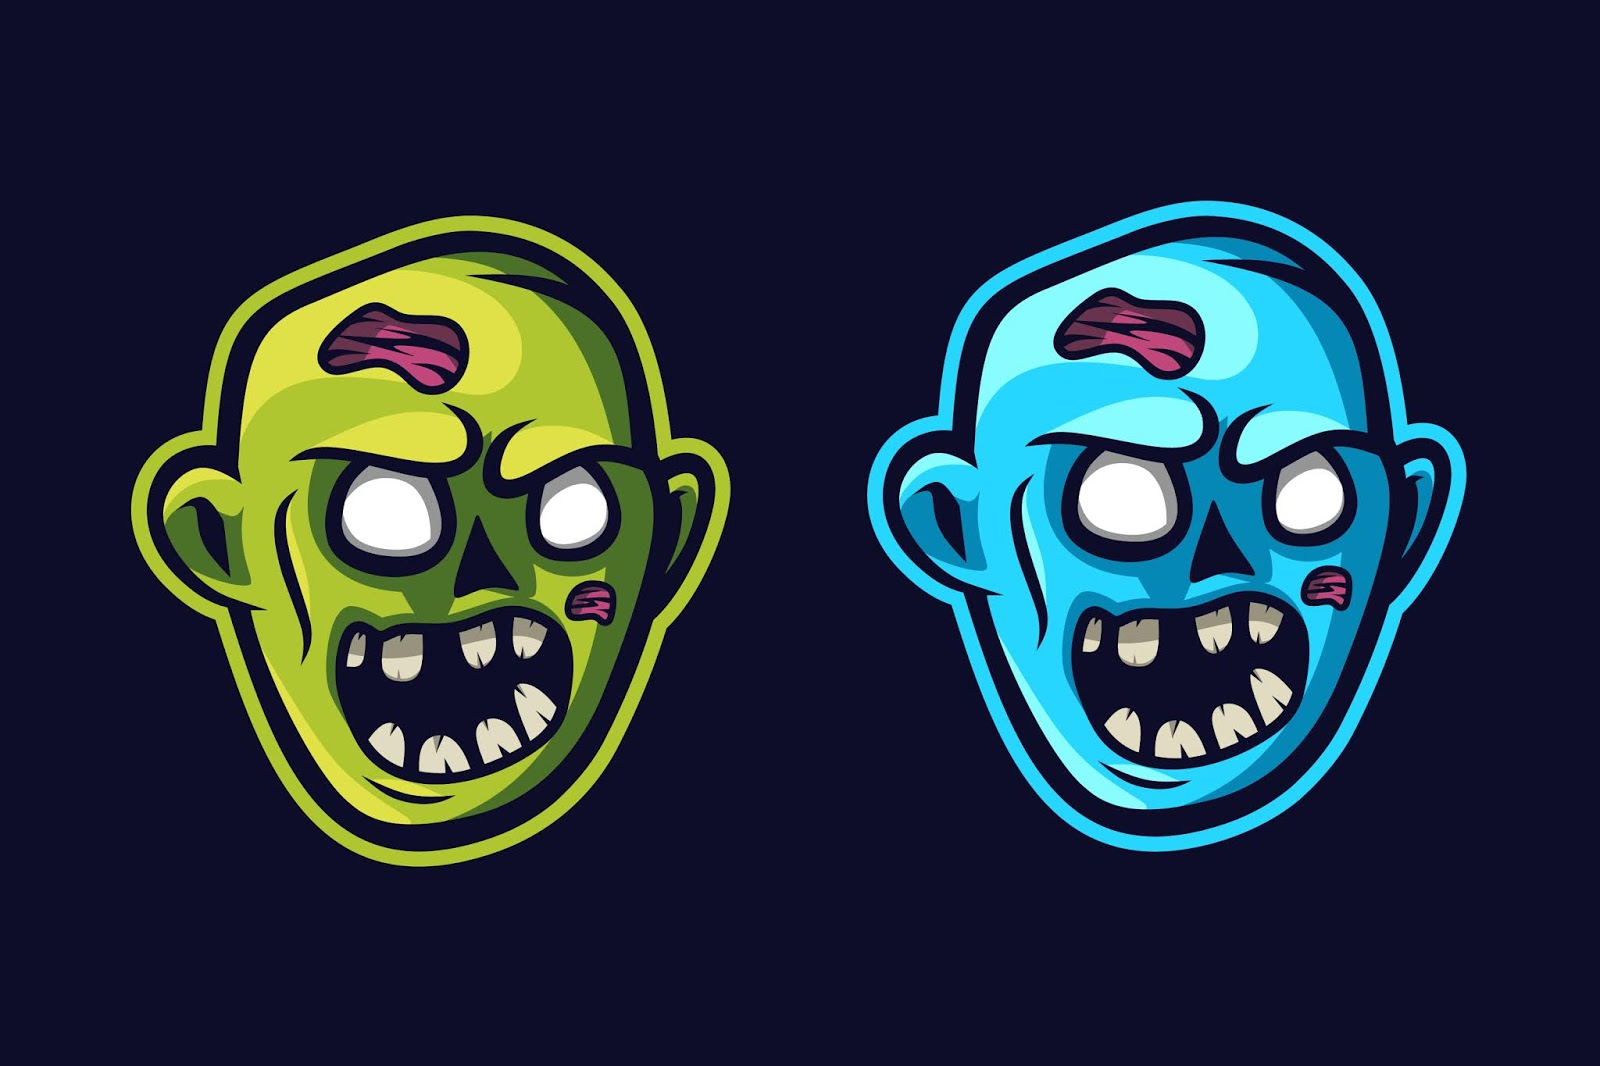 Zombie Face Mascot Logo Free Download Vector CDR, AI, EPS and PNG Formats